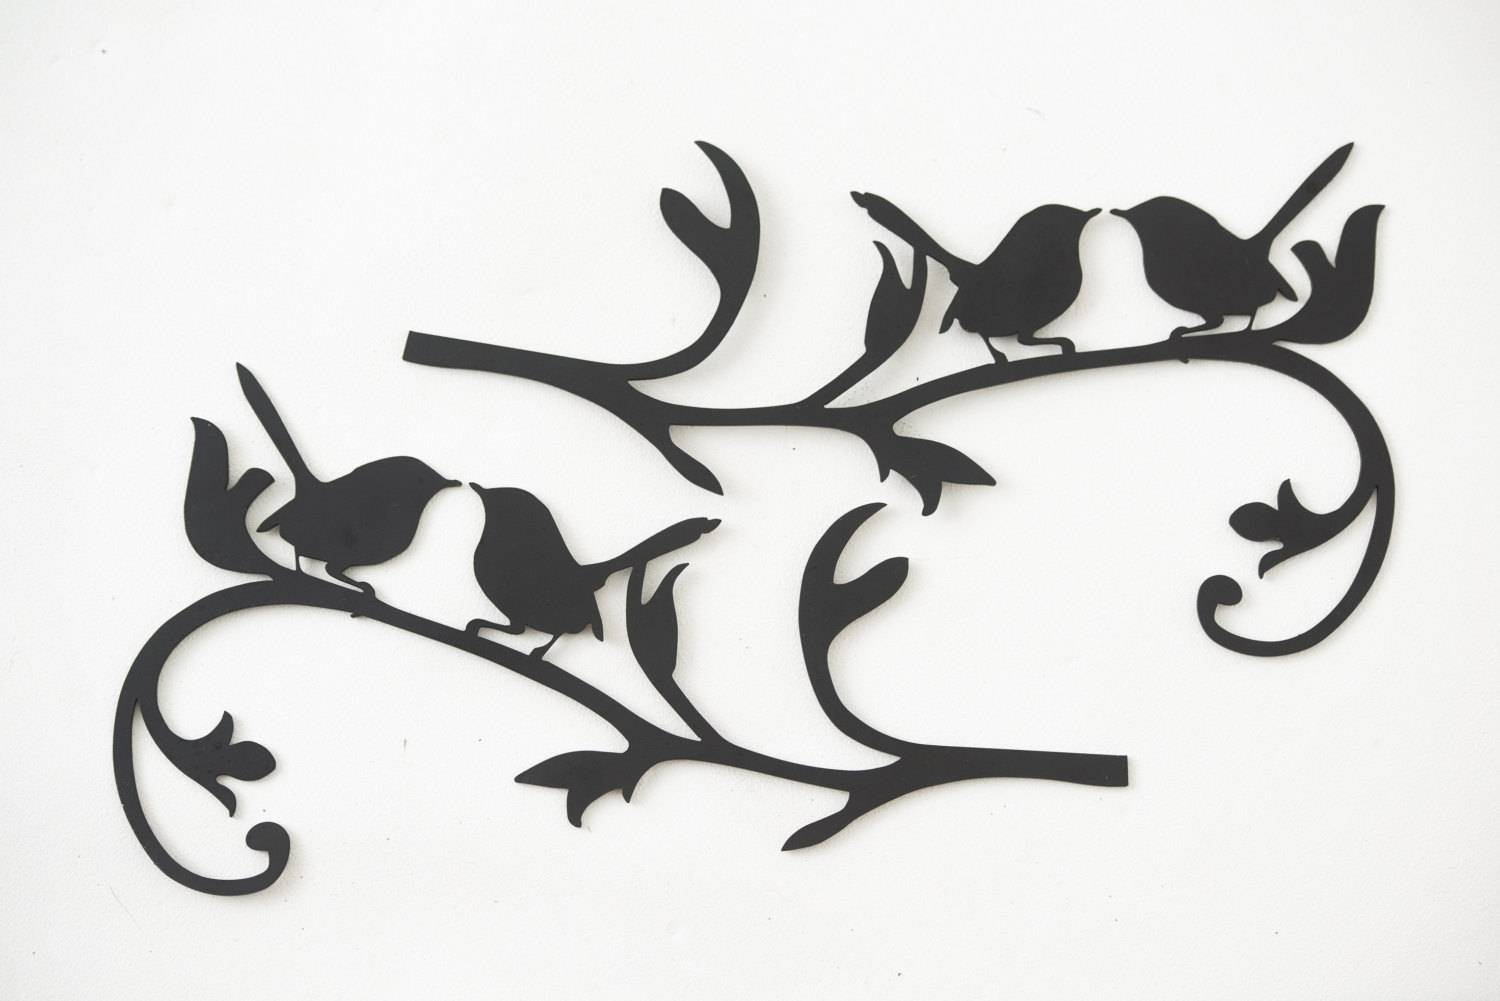 Wall Art Designs: Metal Bird Wall Art Hand Drawn And Laser Cut Pertaining To Most Recent Metal Wall Art Flock Of Seagulls (View 28 of 30)